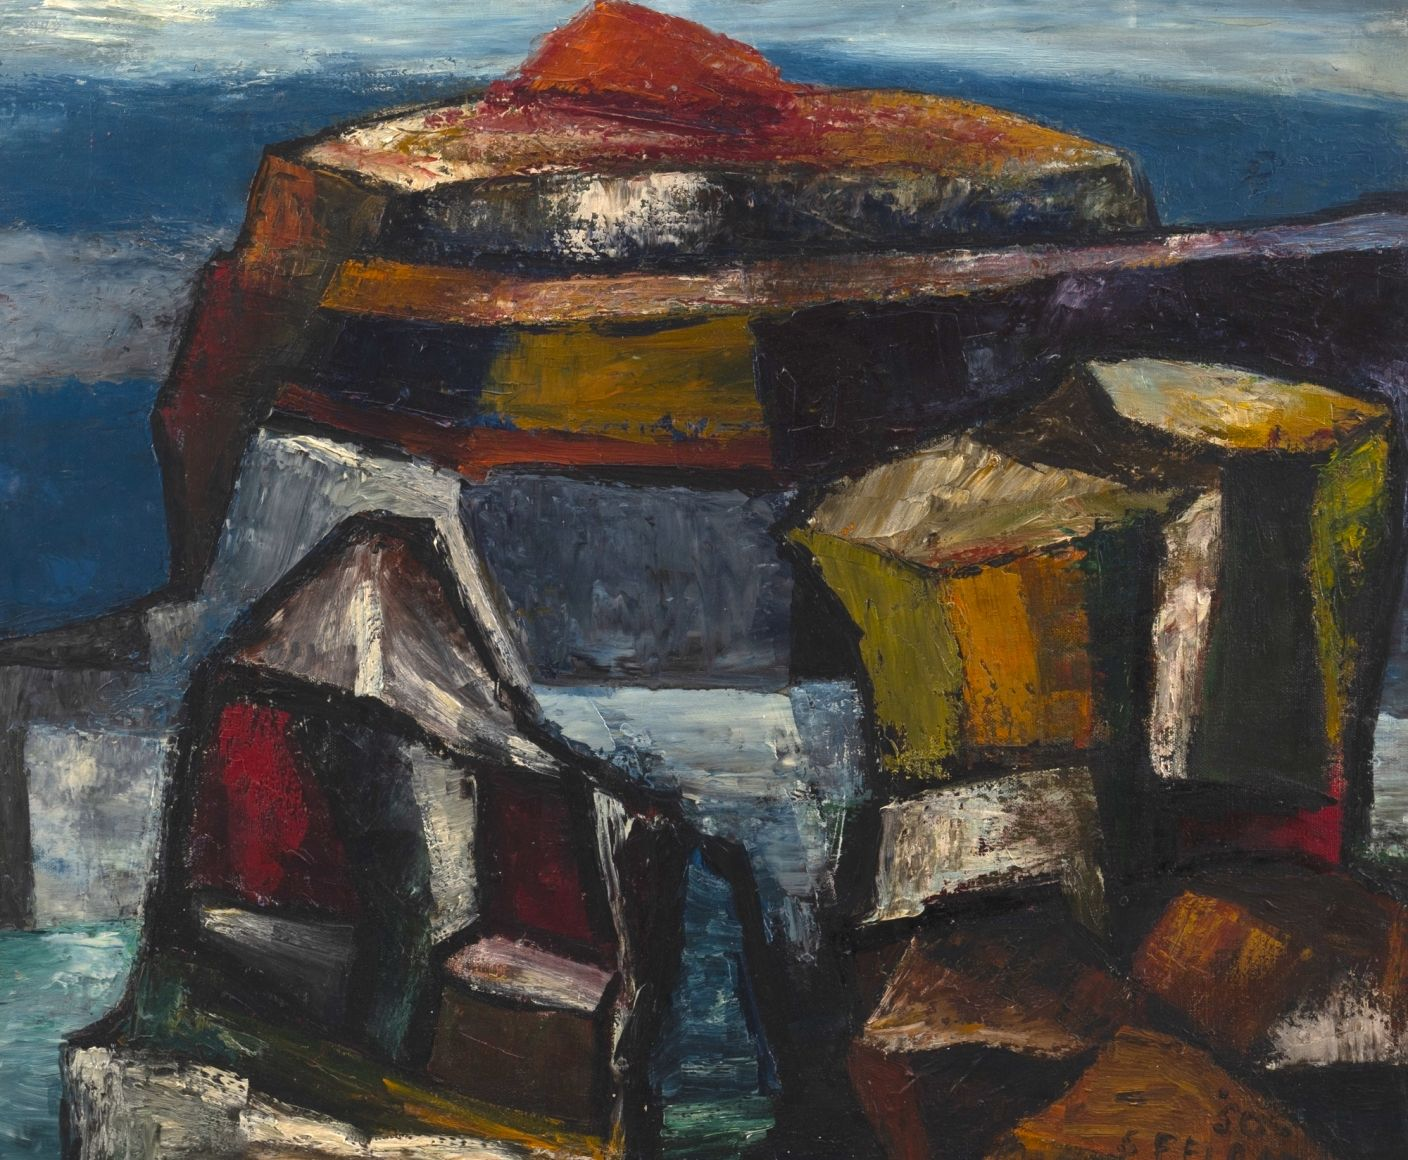 Felrath Hines, Rocks, 1950, Oil on canvas , 20 x 24 Inches. Abstract painting of stacked rocks, with both cool and warm colors. Felrath Hines worked to create universal visual idioms from a place of complex personal experience. His figurative and cubist-style artwork morphed into soft-edged organic abstracts as he grappled with hues in his chosen oil medium.